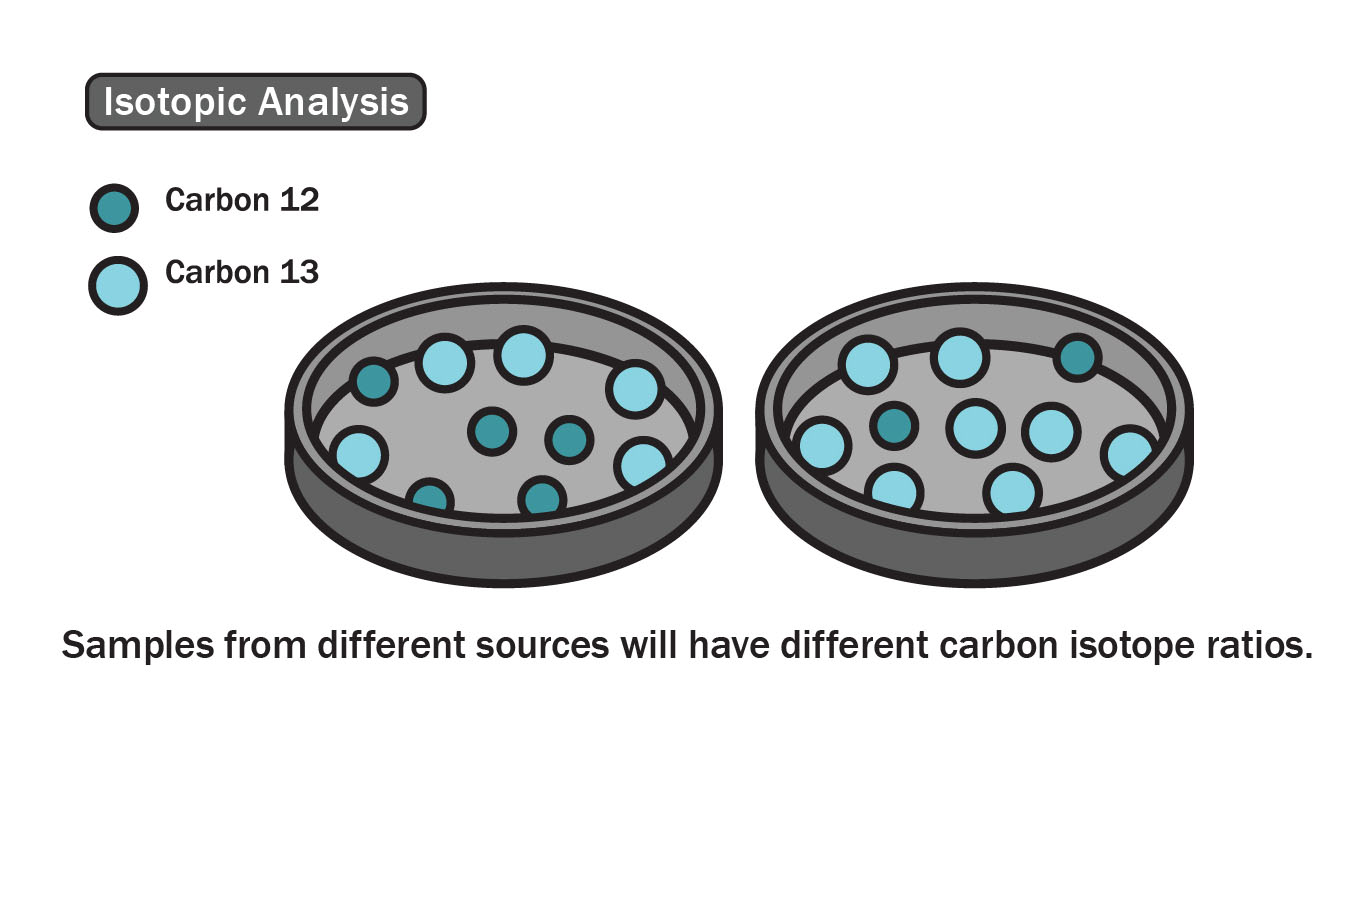 Isotopic analyisis